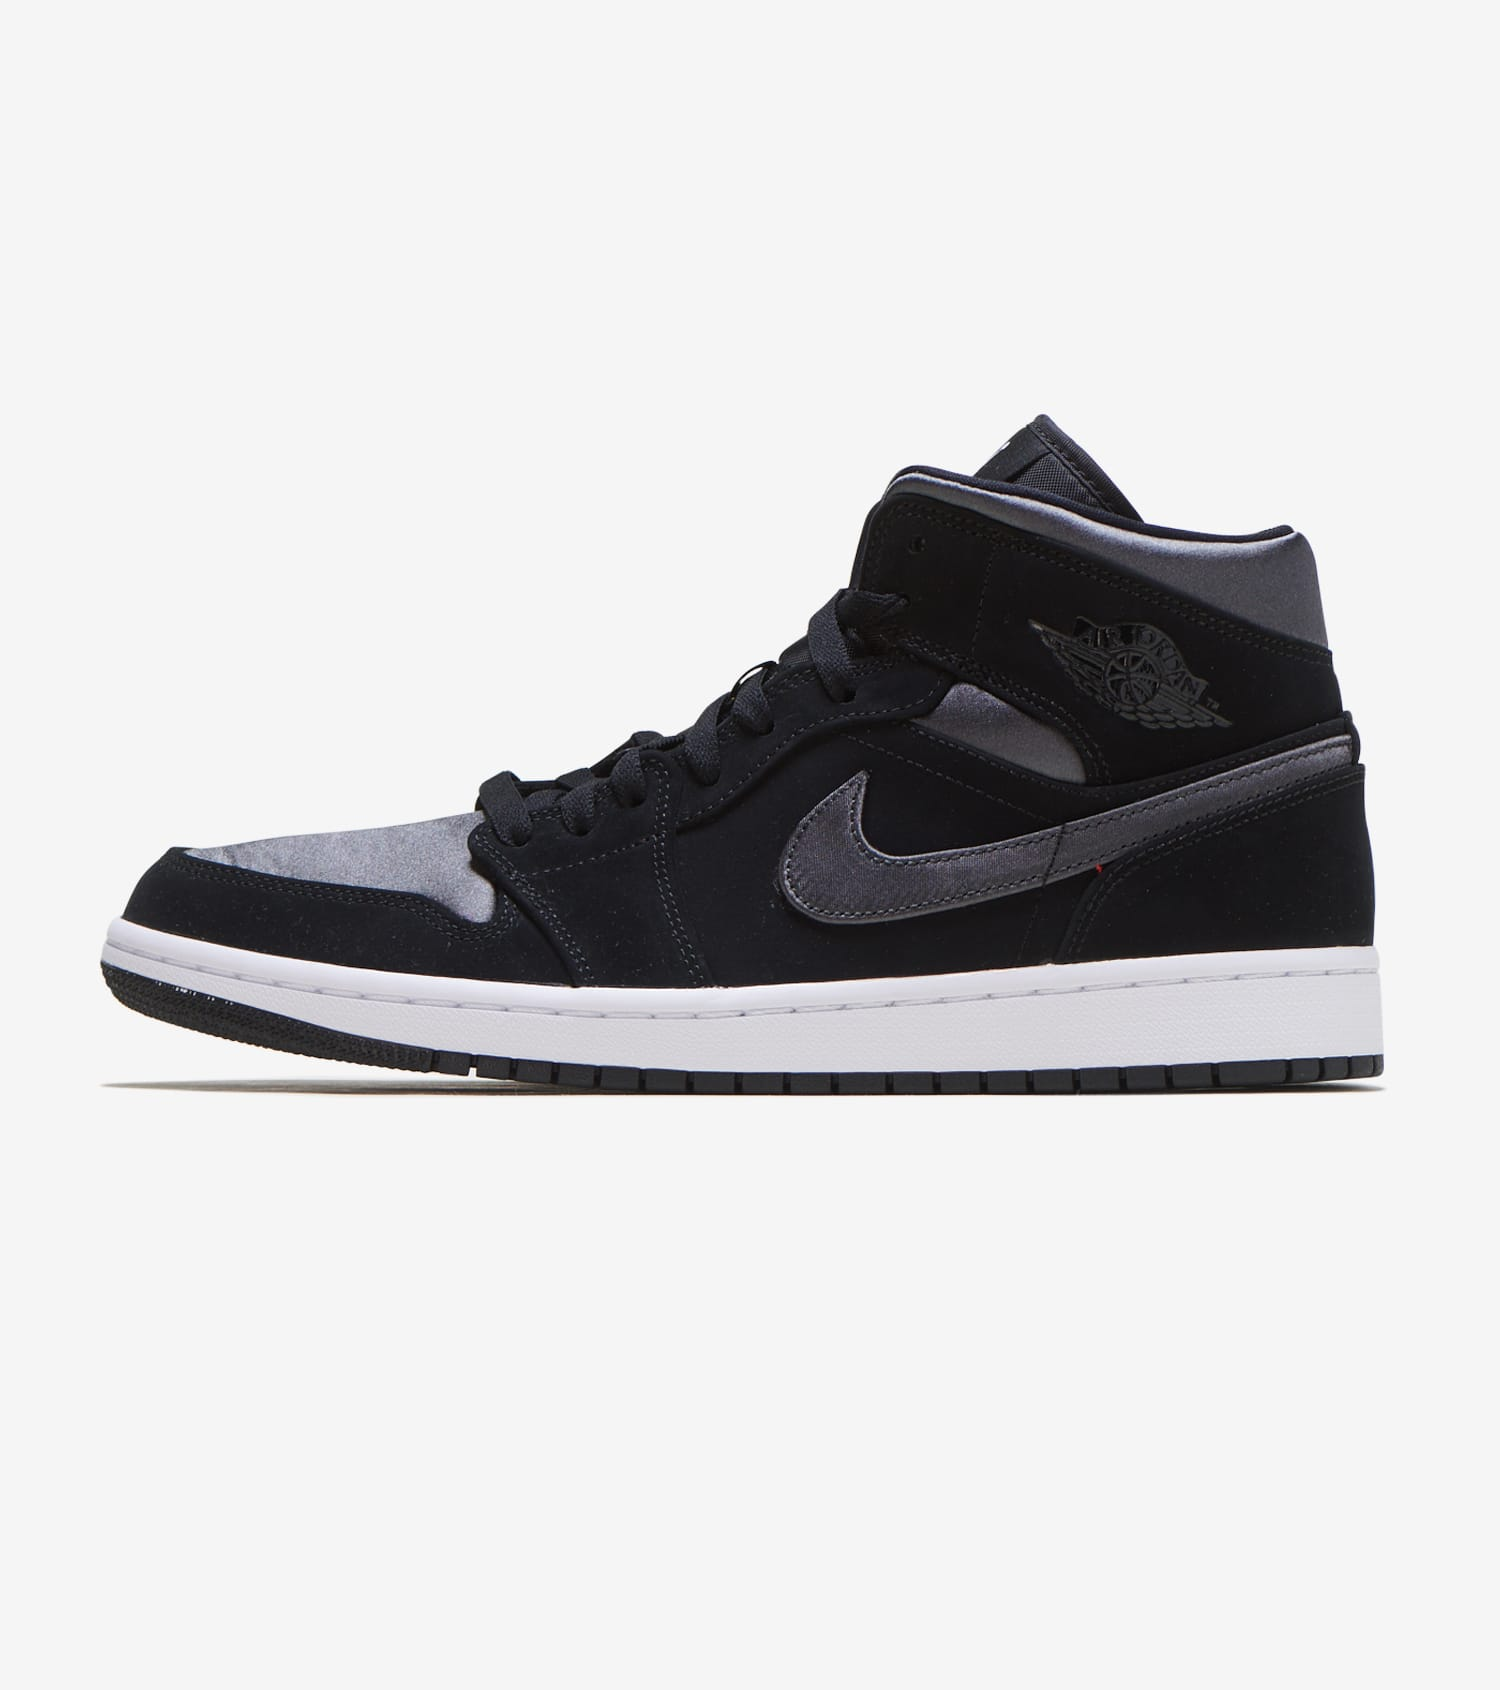 wholesale dealer 4f87d fe87c Air Jordan 1 Mid SE